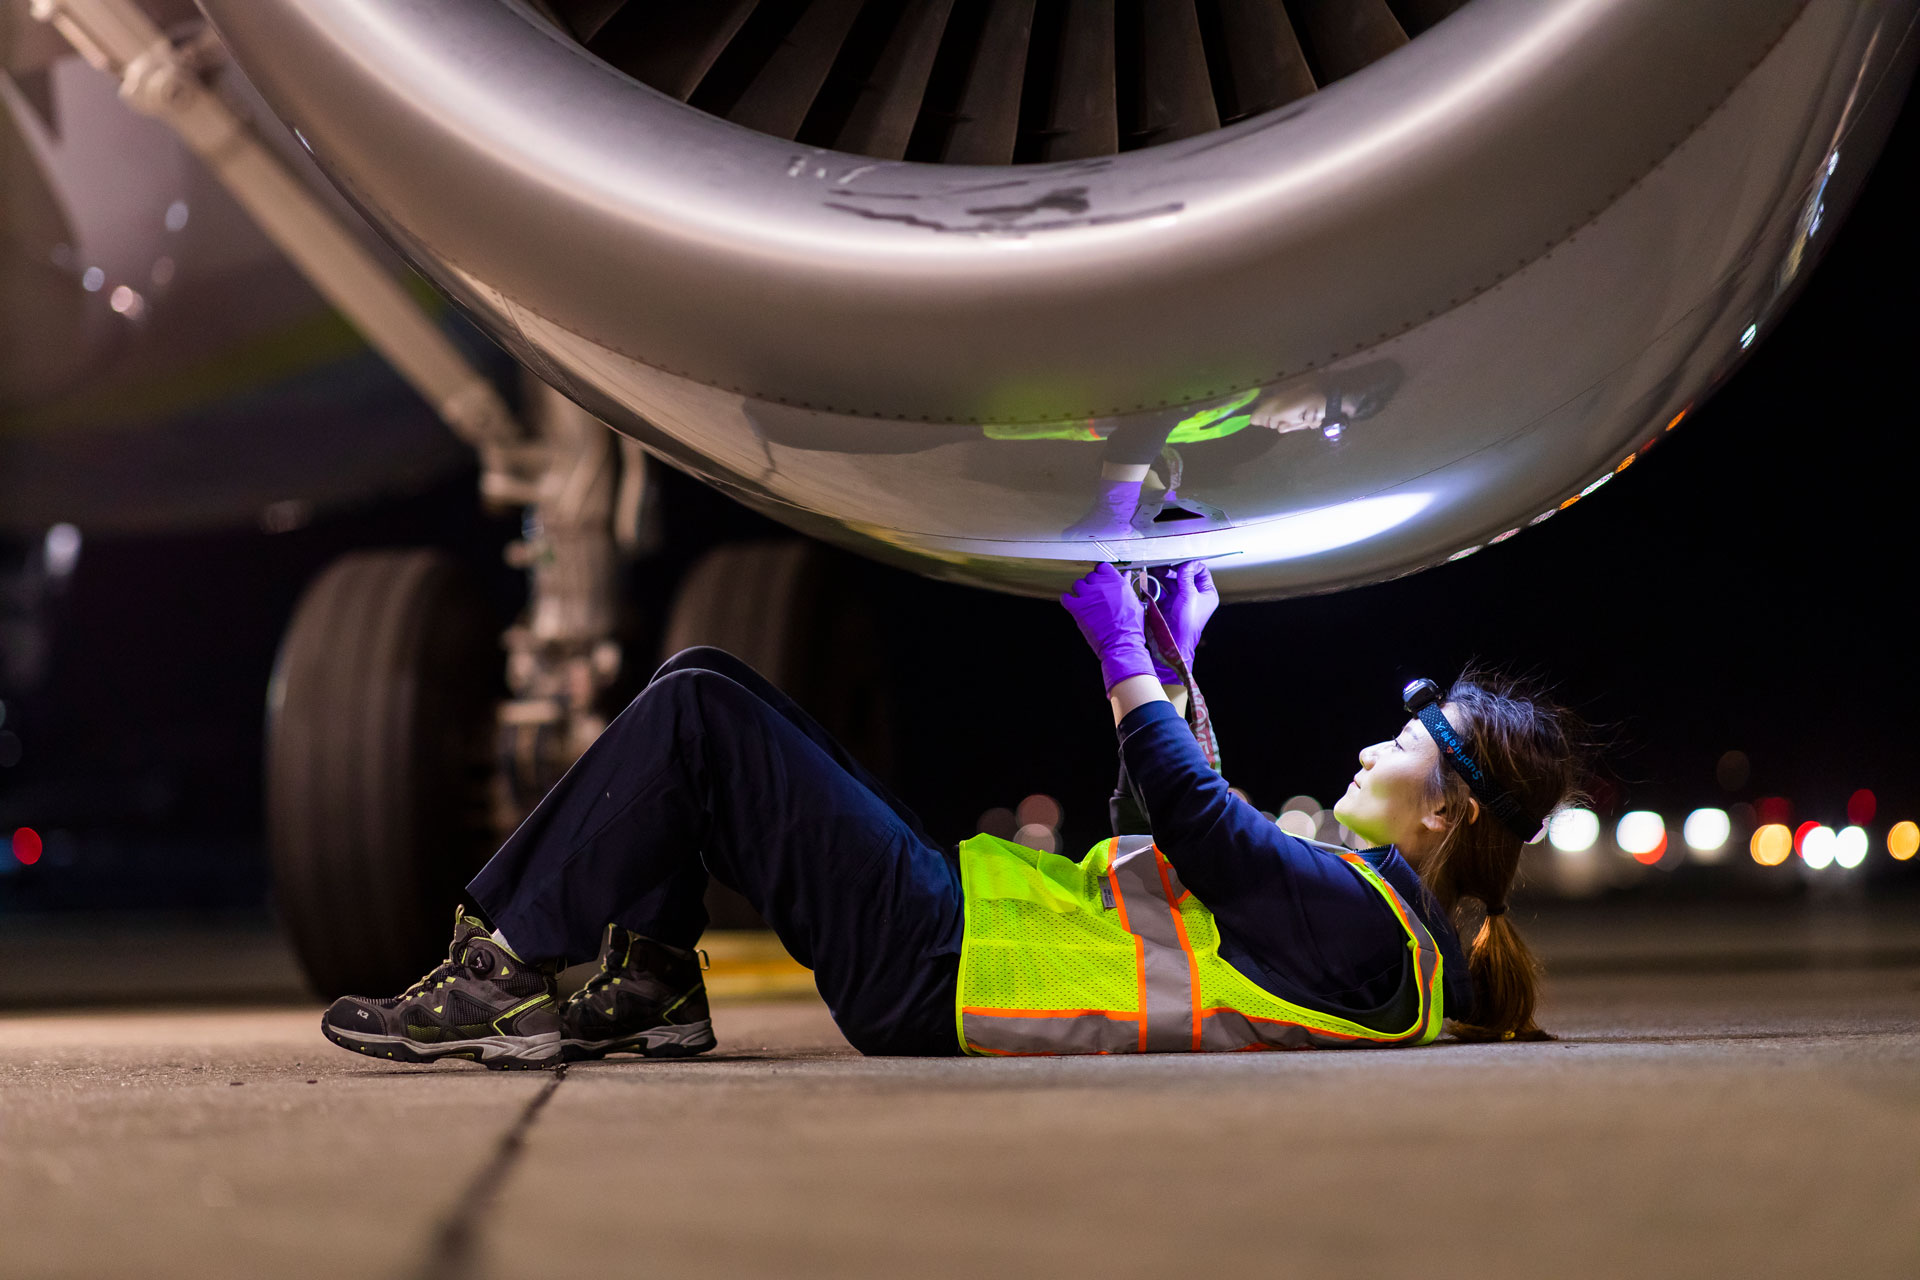 Woman with a wrench in front of a jet turbine